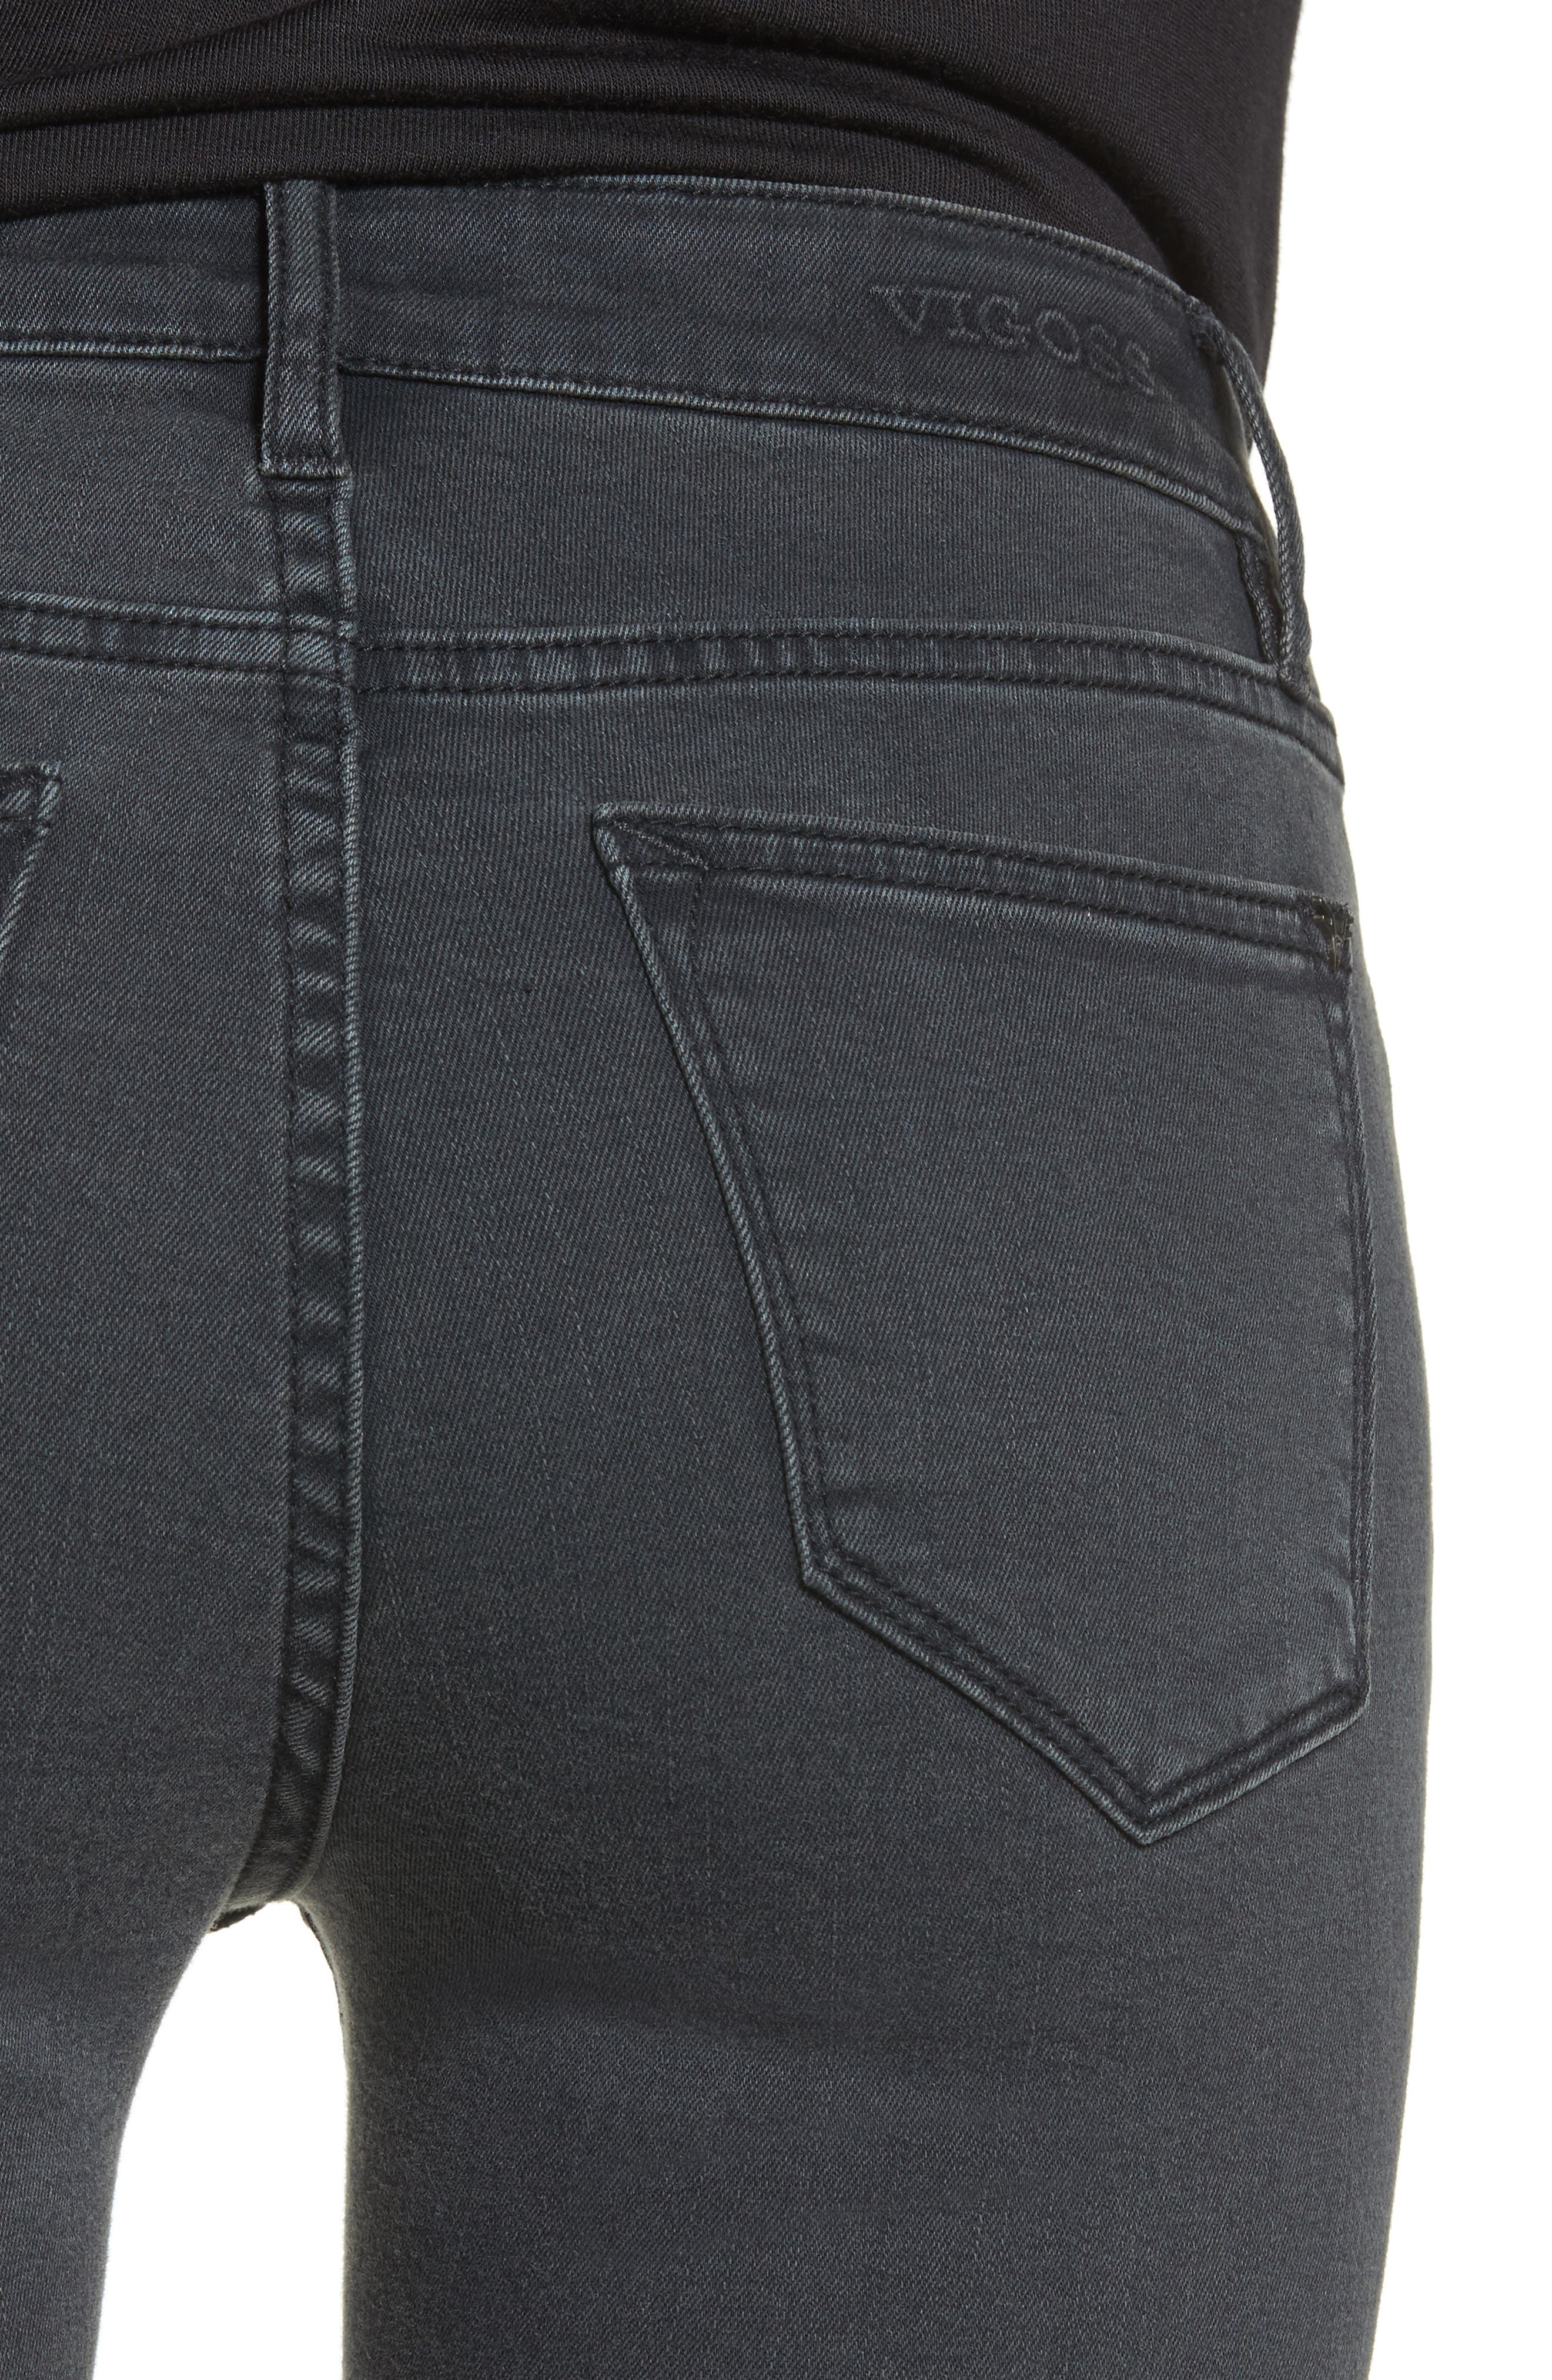 Jagger Front Seam Skinny Jeans,                             Alternate thumbnail 4, color,